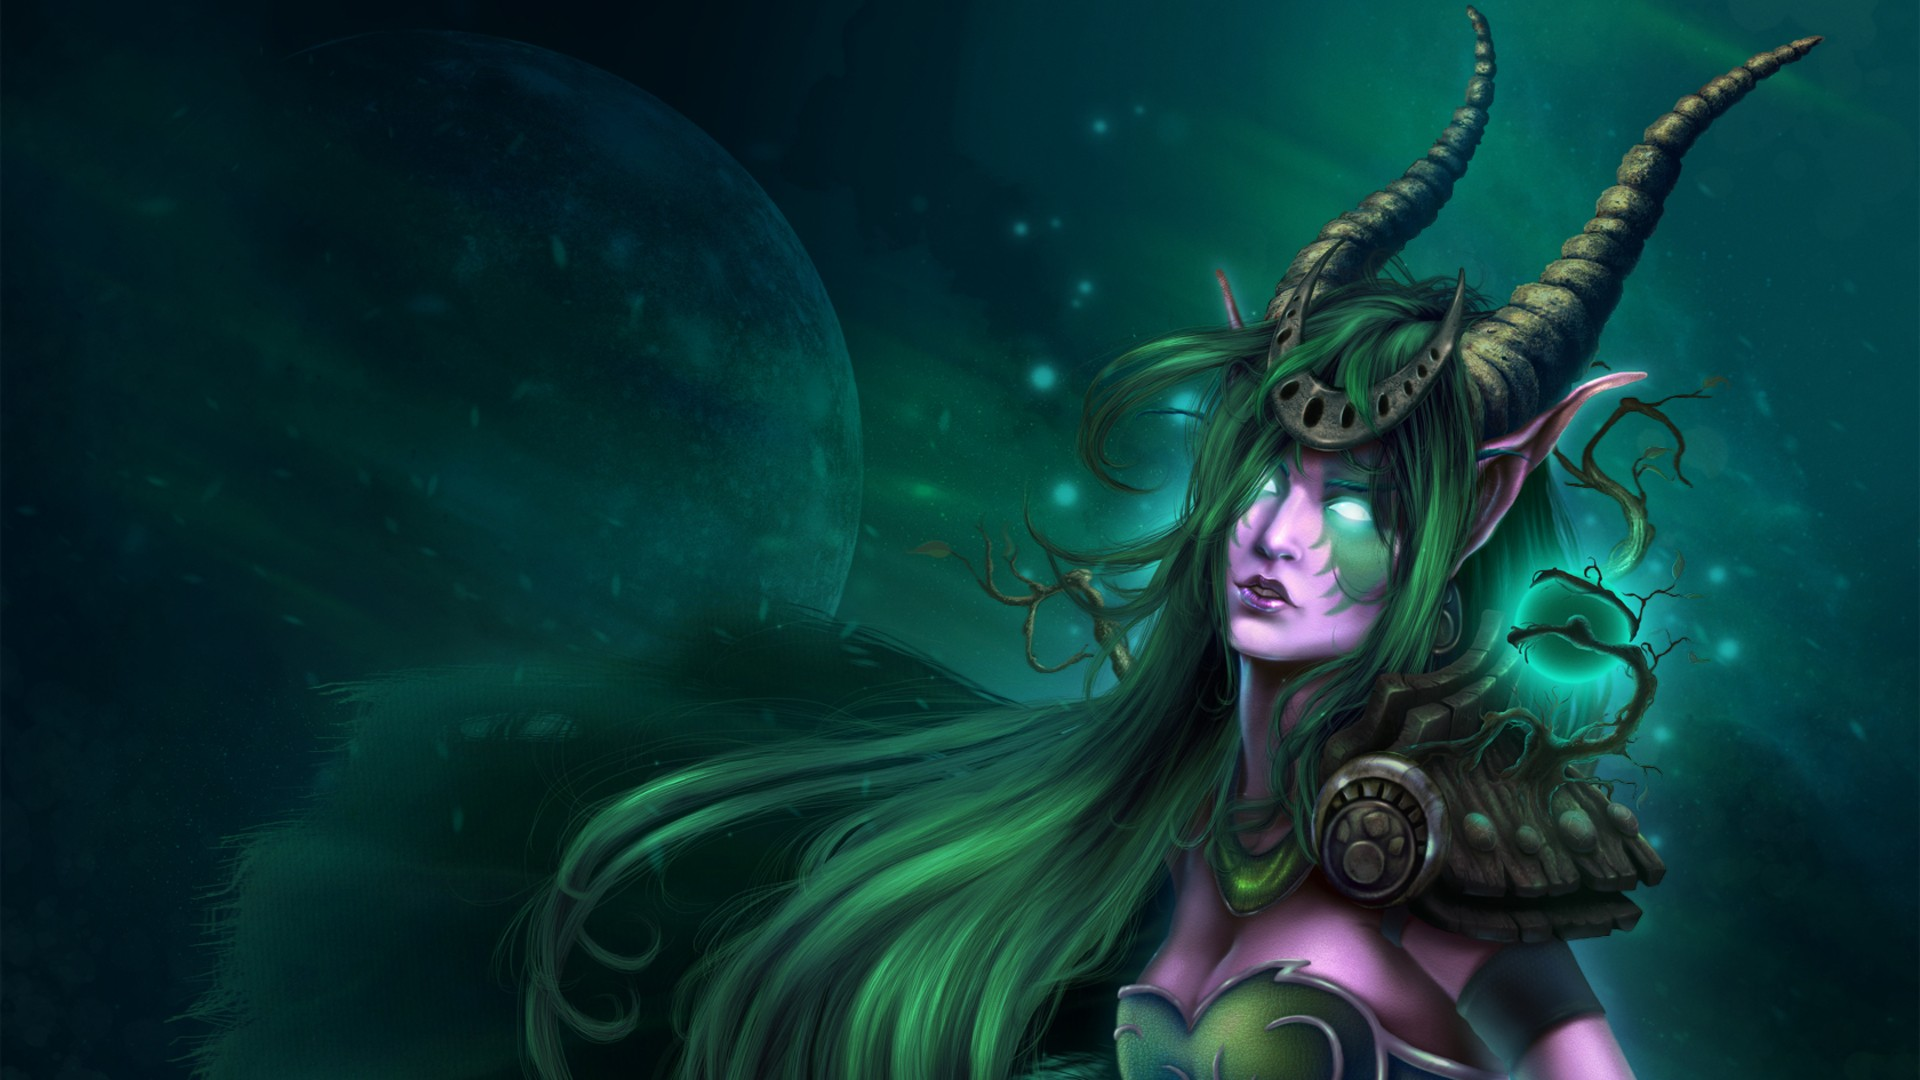 Download World Of Warcraft Druid Wallpaper Gallery